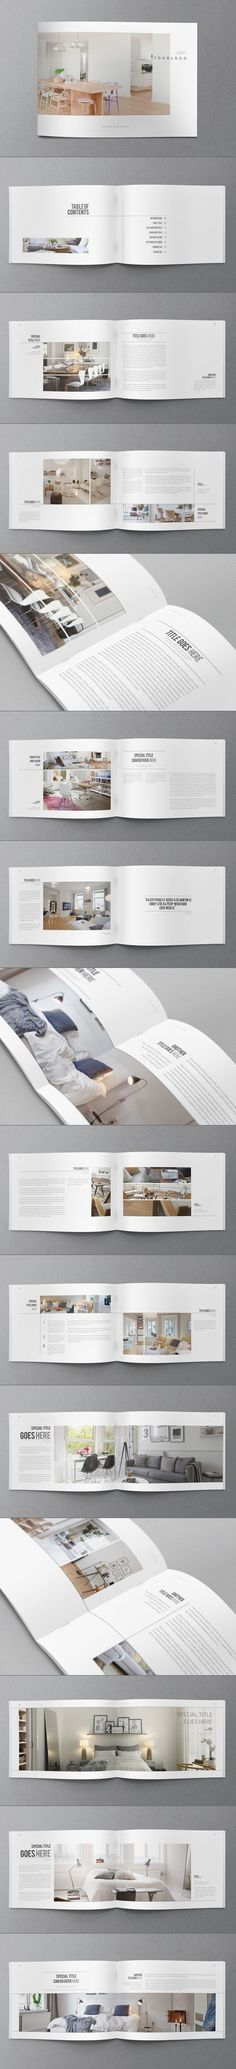 """Minimal Interior Design Brochure. Download here: <a href=""""http://graphicriver.net/item/minimal-interior-design-brochure/8925678?ref=abradesign"""" rel=""""nofollow"""" target=""""_blank"""">graphicriver.net/...</a> <a class=""""pintag"""" href=""""/explore/design/"""" title=""""#design explore Pinterest"""">#design</a> <a class=""""pintag searchlink"""" data-query=""""%23brochure"""" data-type=""""hashtag"""" href=""""/search/?q=%23brochure&rs=hashtag"""" rel=""""nofollow"""" title=""""#brochure search Pinterest"""">#brochure</a>"""